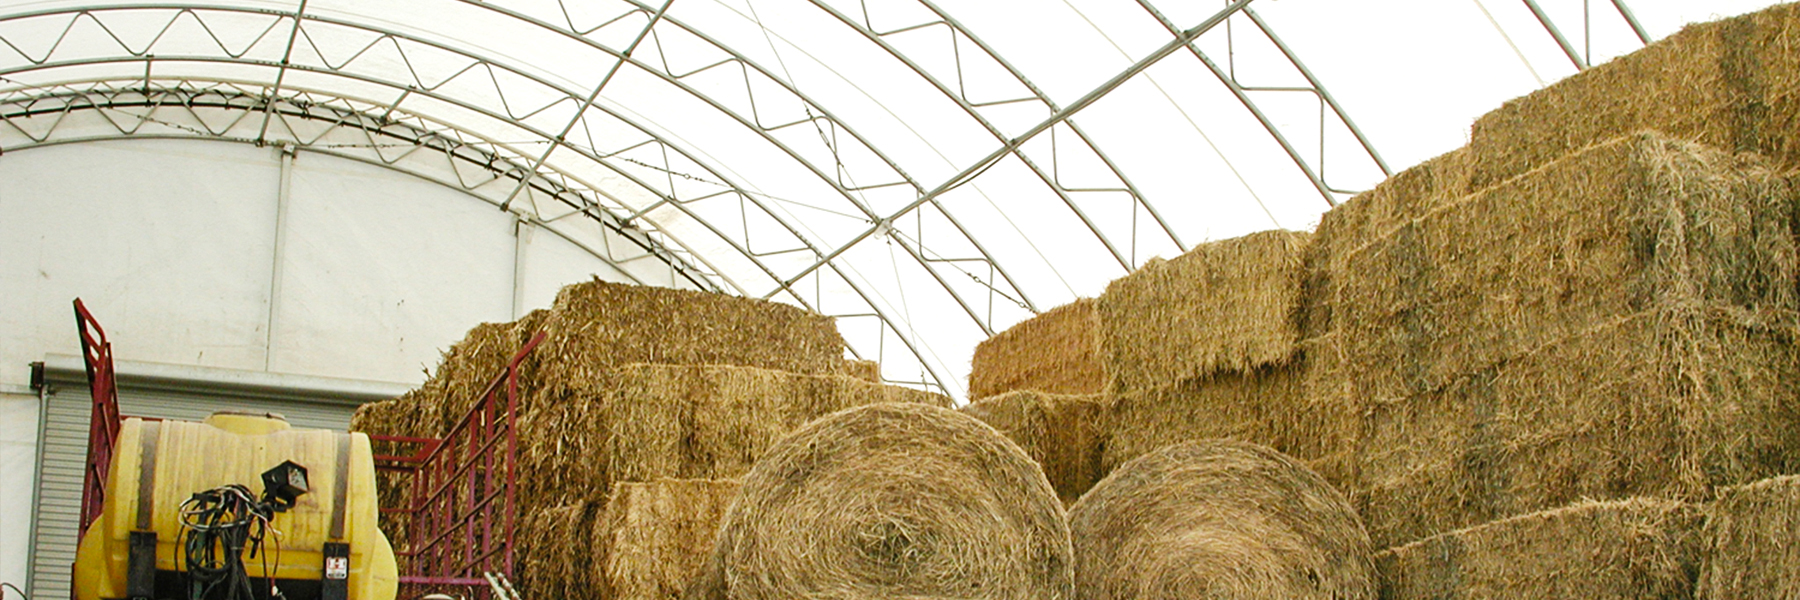 feed shed